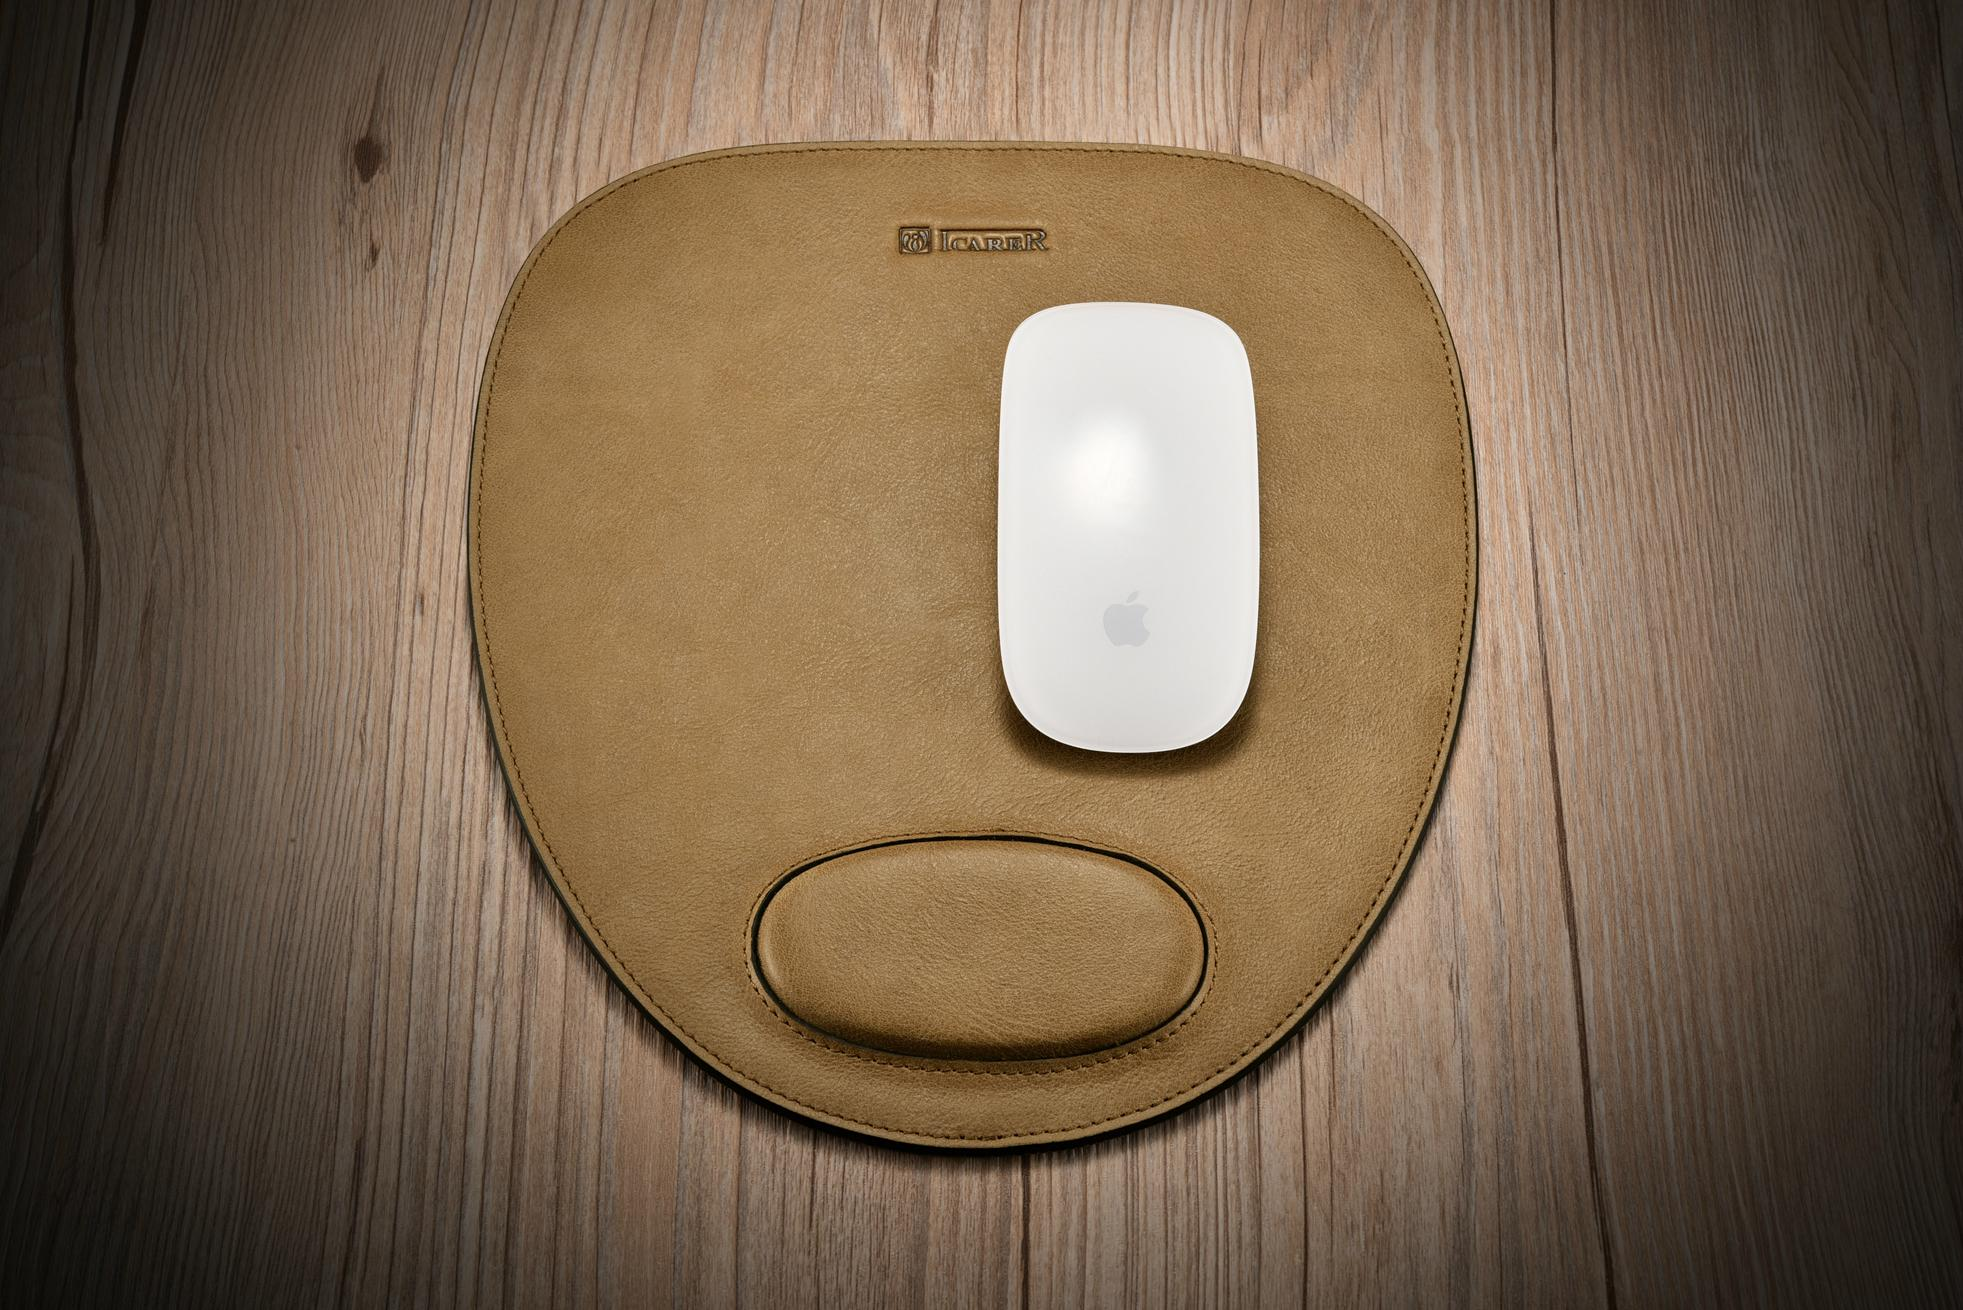 iCarer Shenzhou Real Leather Mouse Pad 6